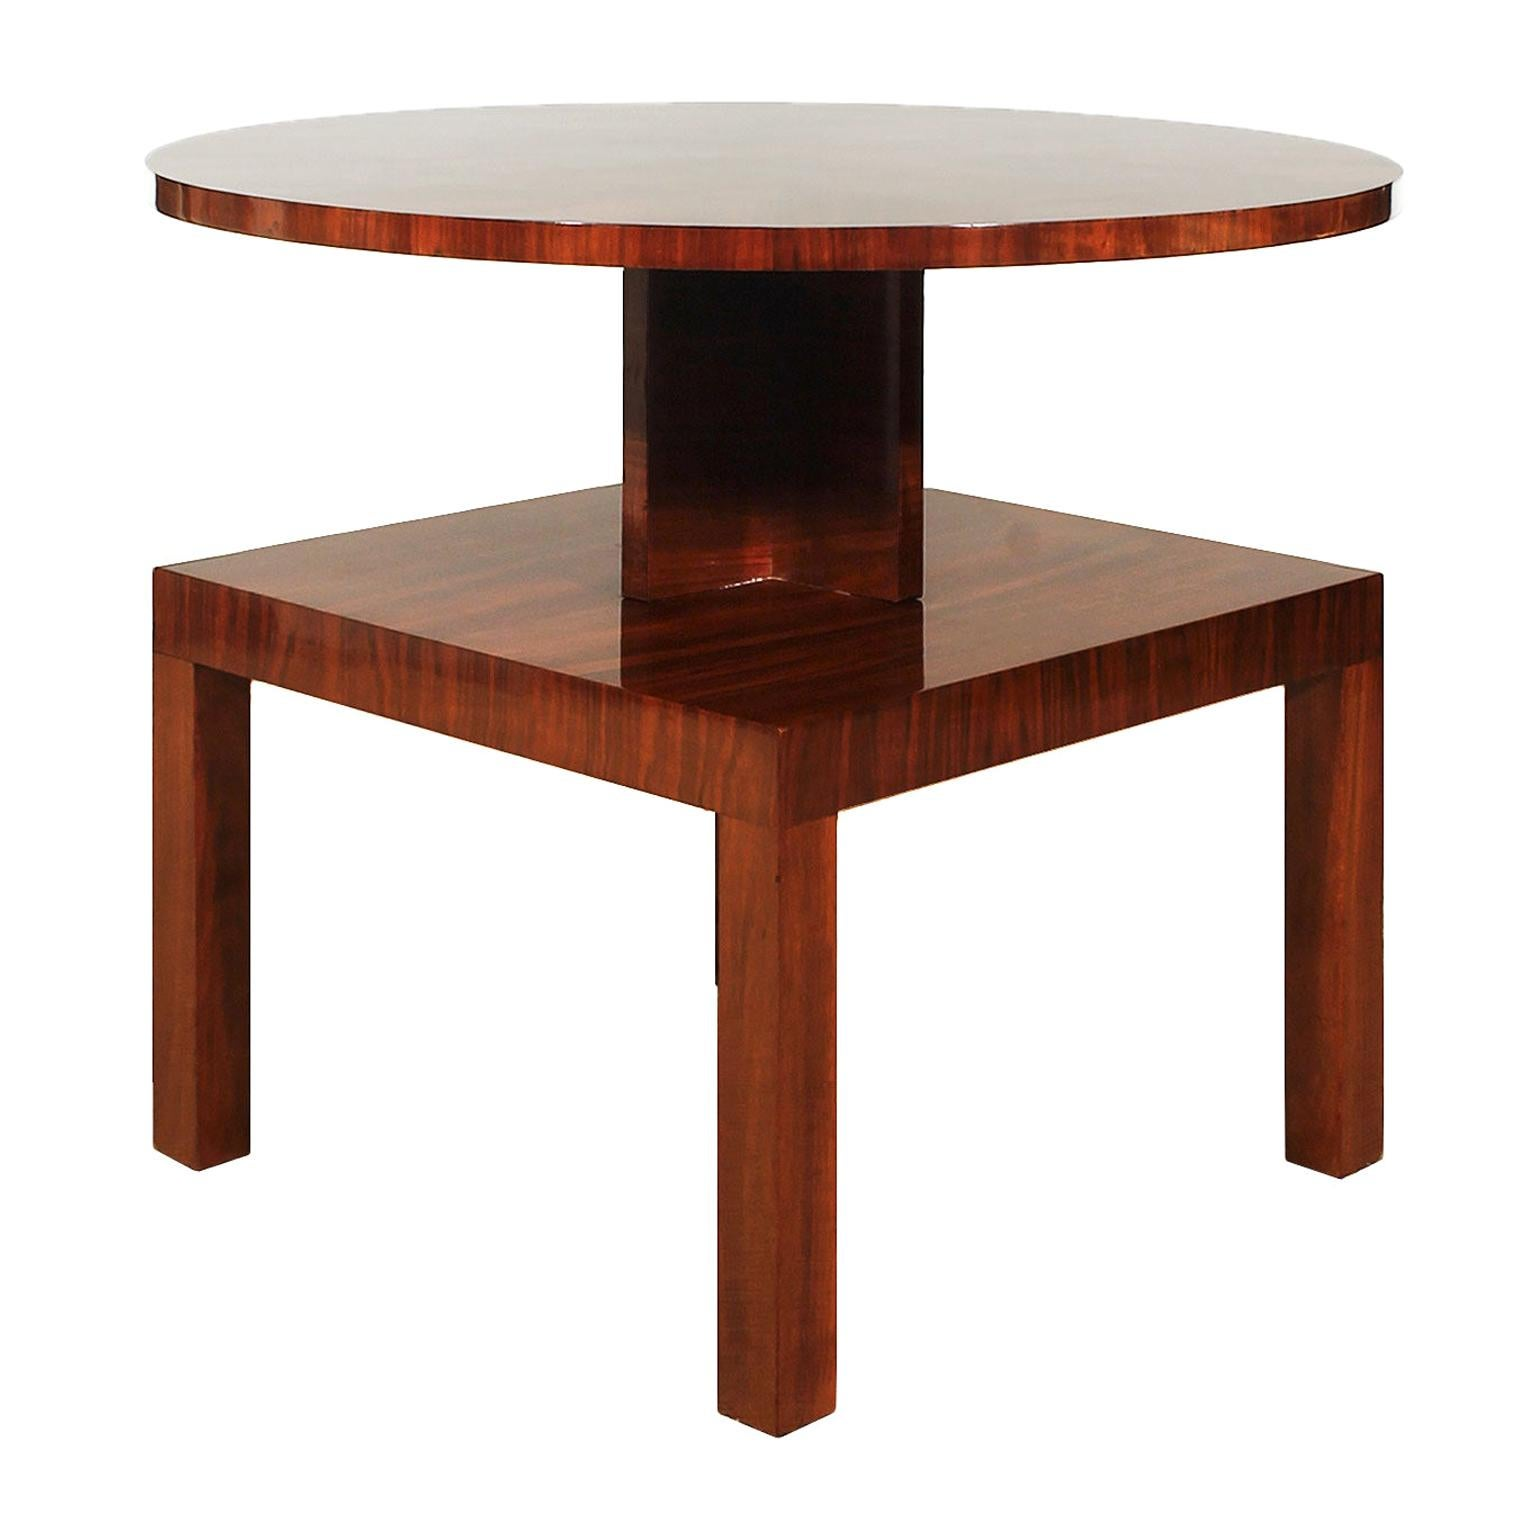 1930s Art Deco Cubist Side Table, Walnut, Marquetry, France